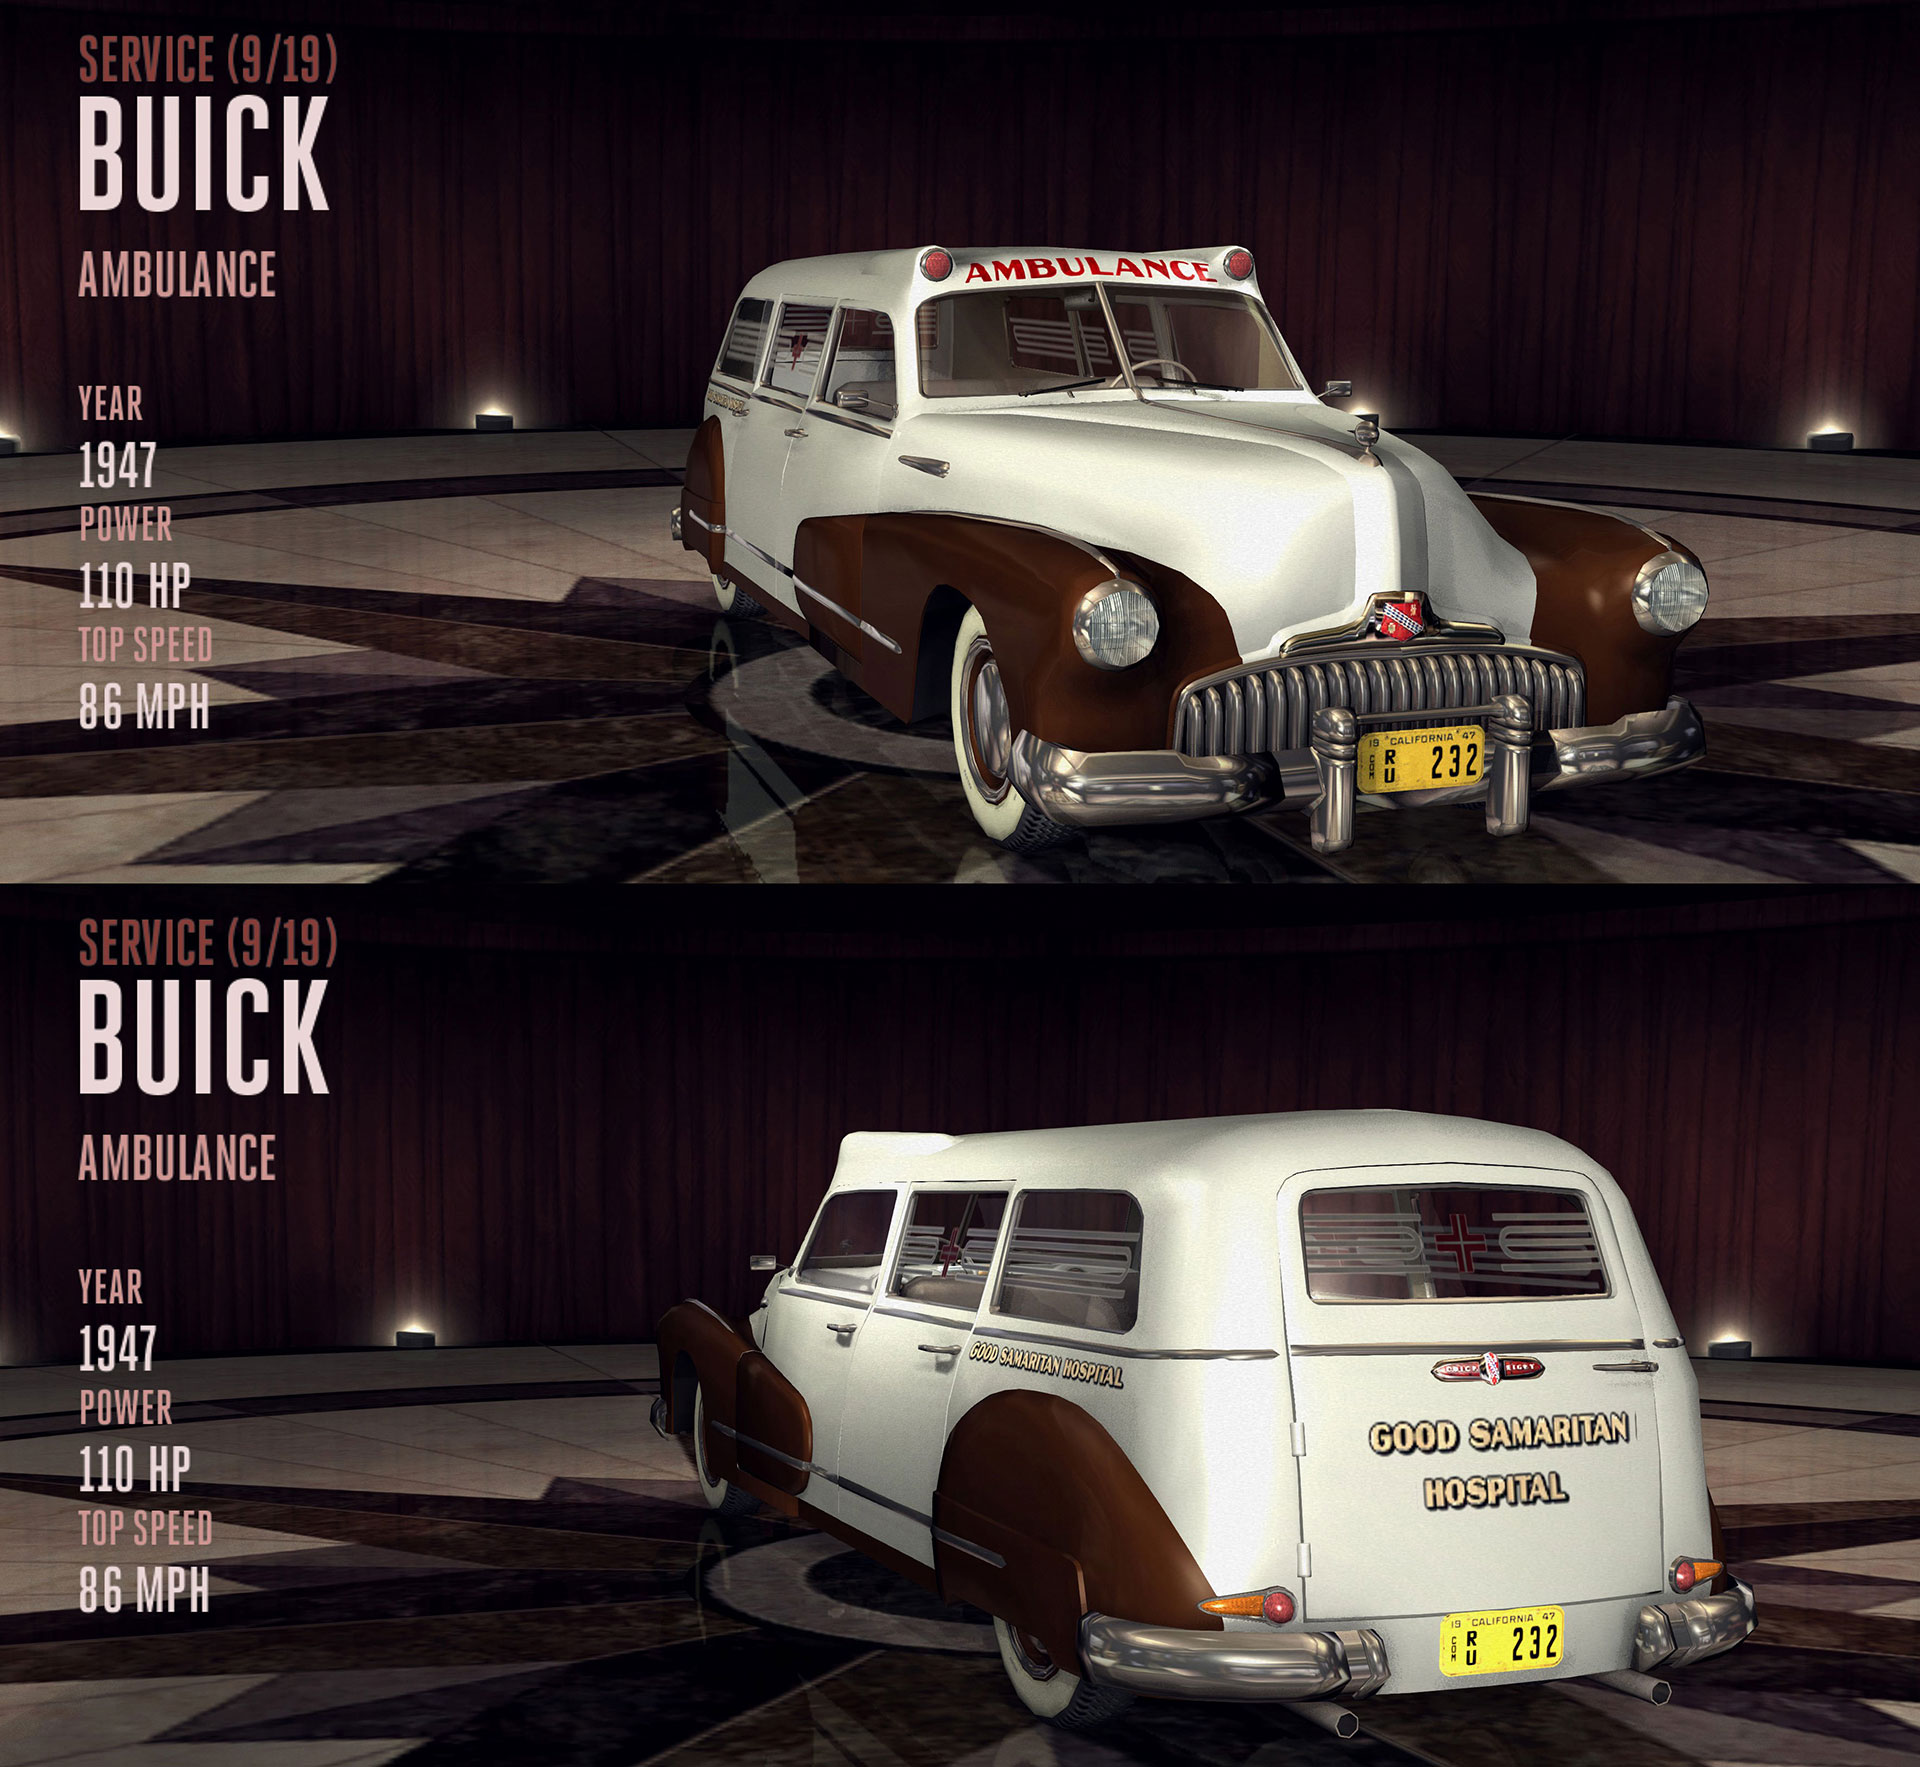 Archivo:1947-buick-ambulance.jpg